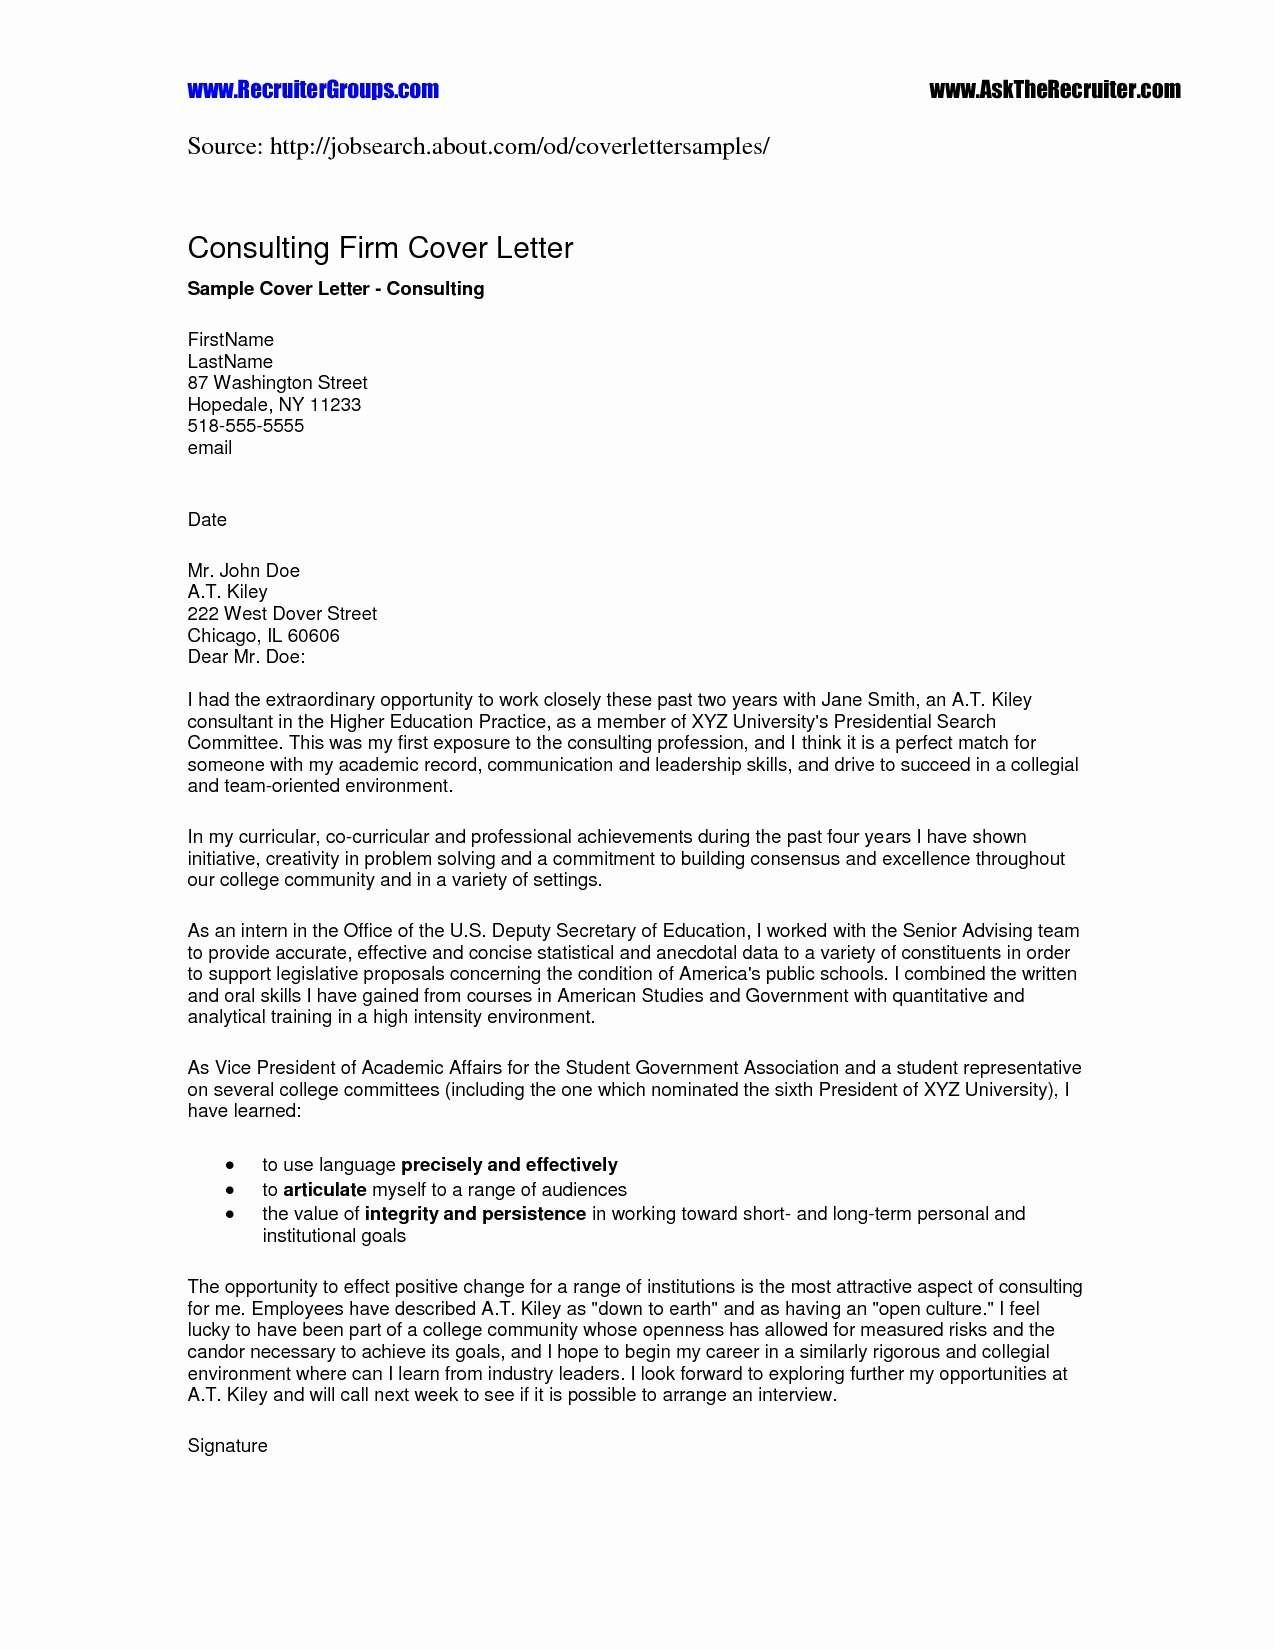 Professional association Of Resume Writers - 24 Professional association Resume Writers